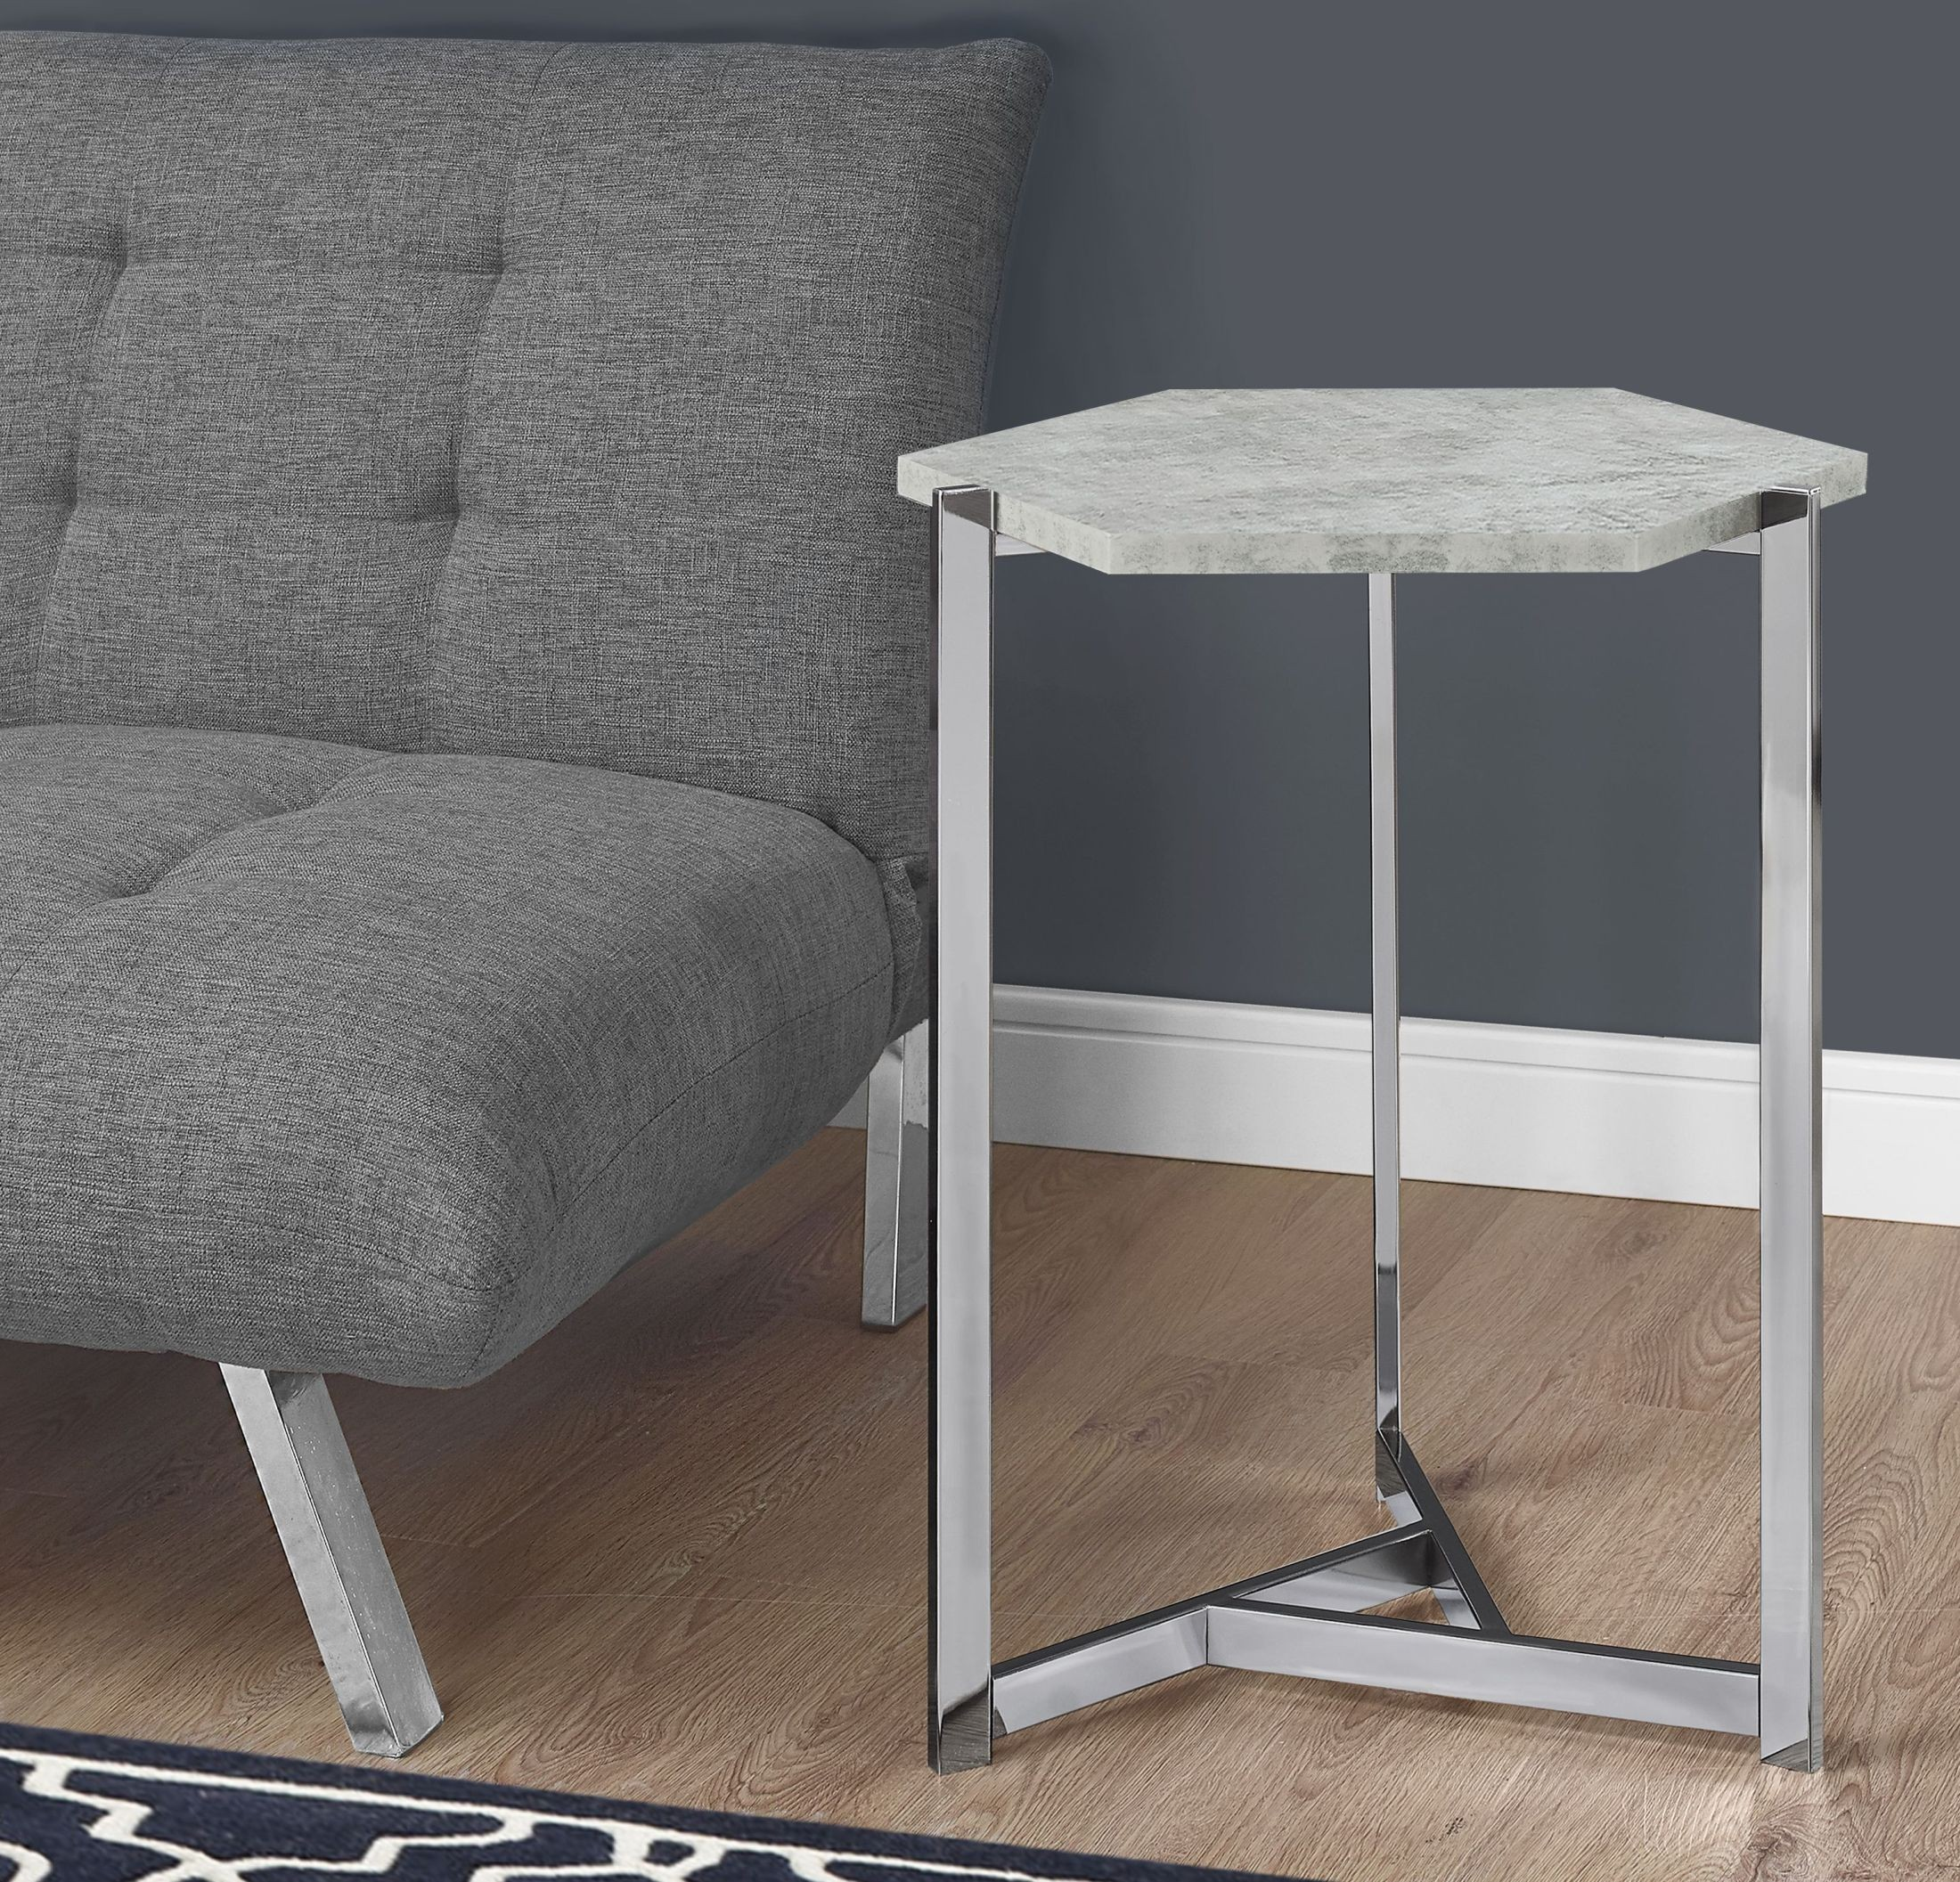 gray cement hexagon accent table from monarch coleman furniture grey normande lighting led desk lamp granite top coffee and end tables white bedside pier one imports locations